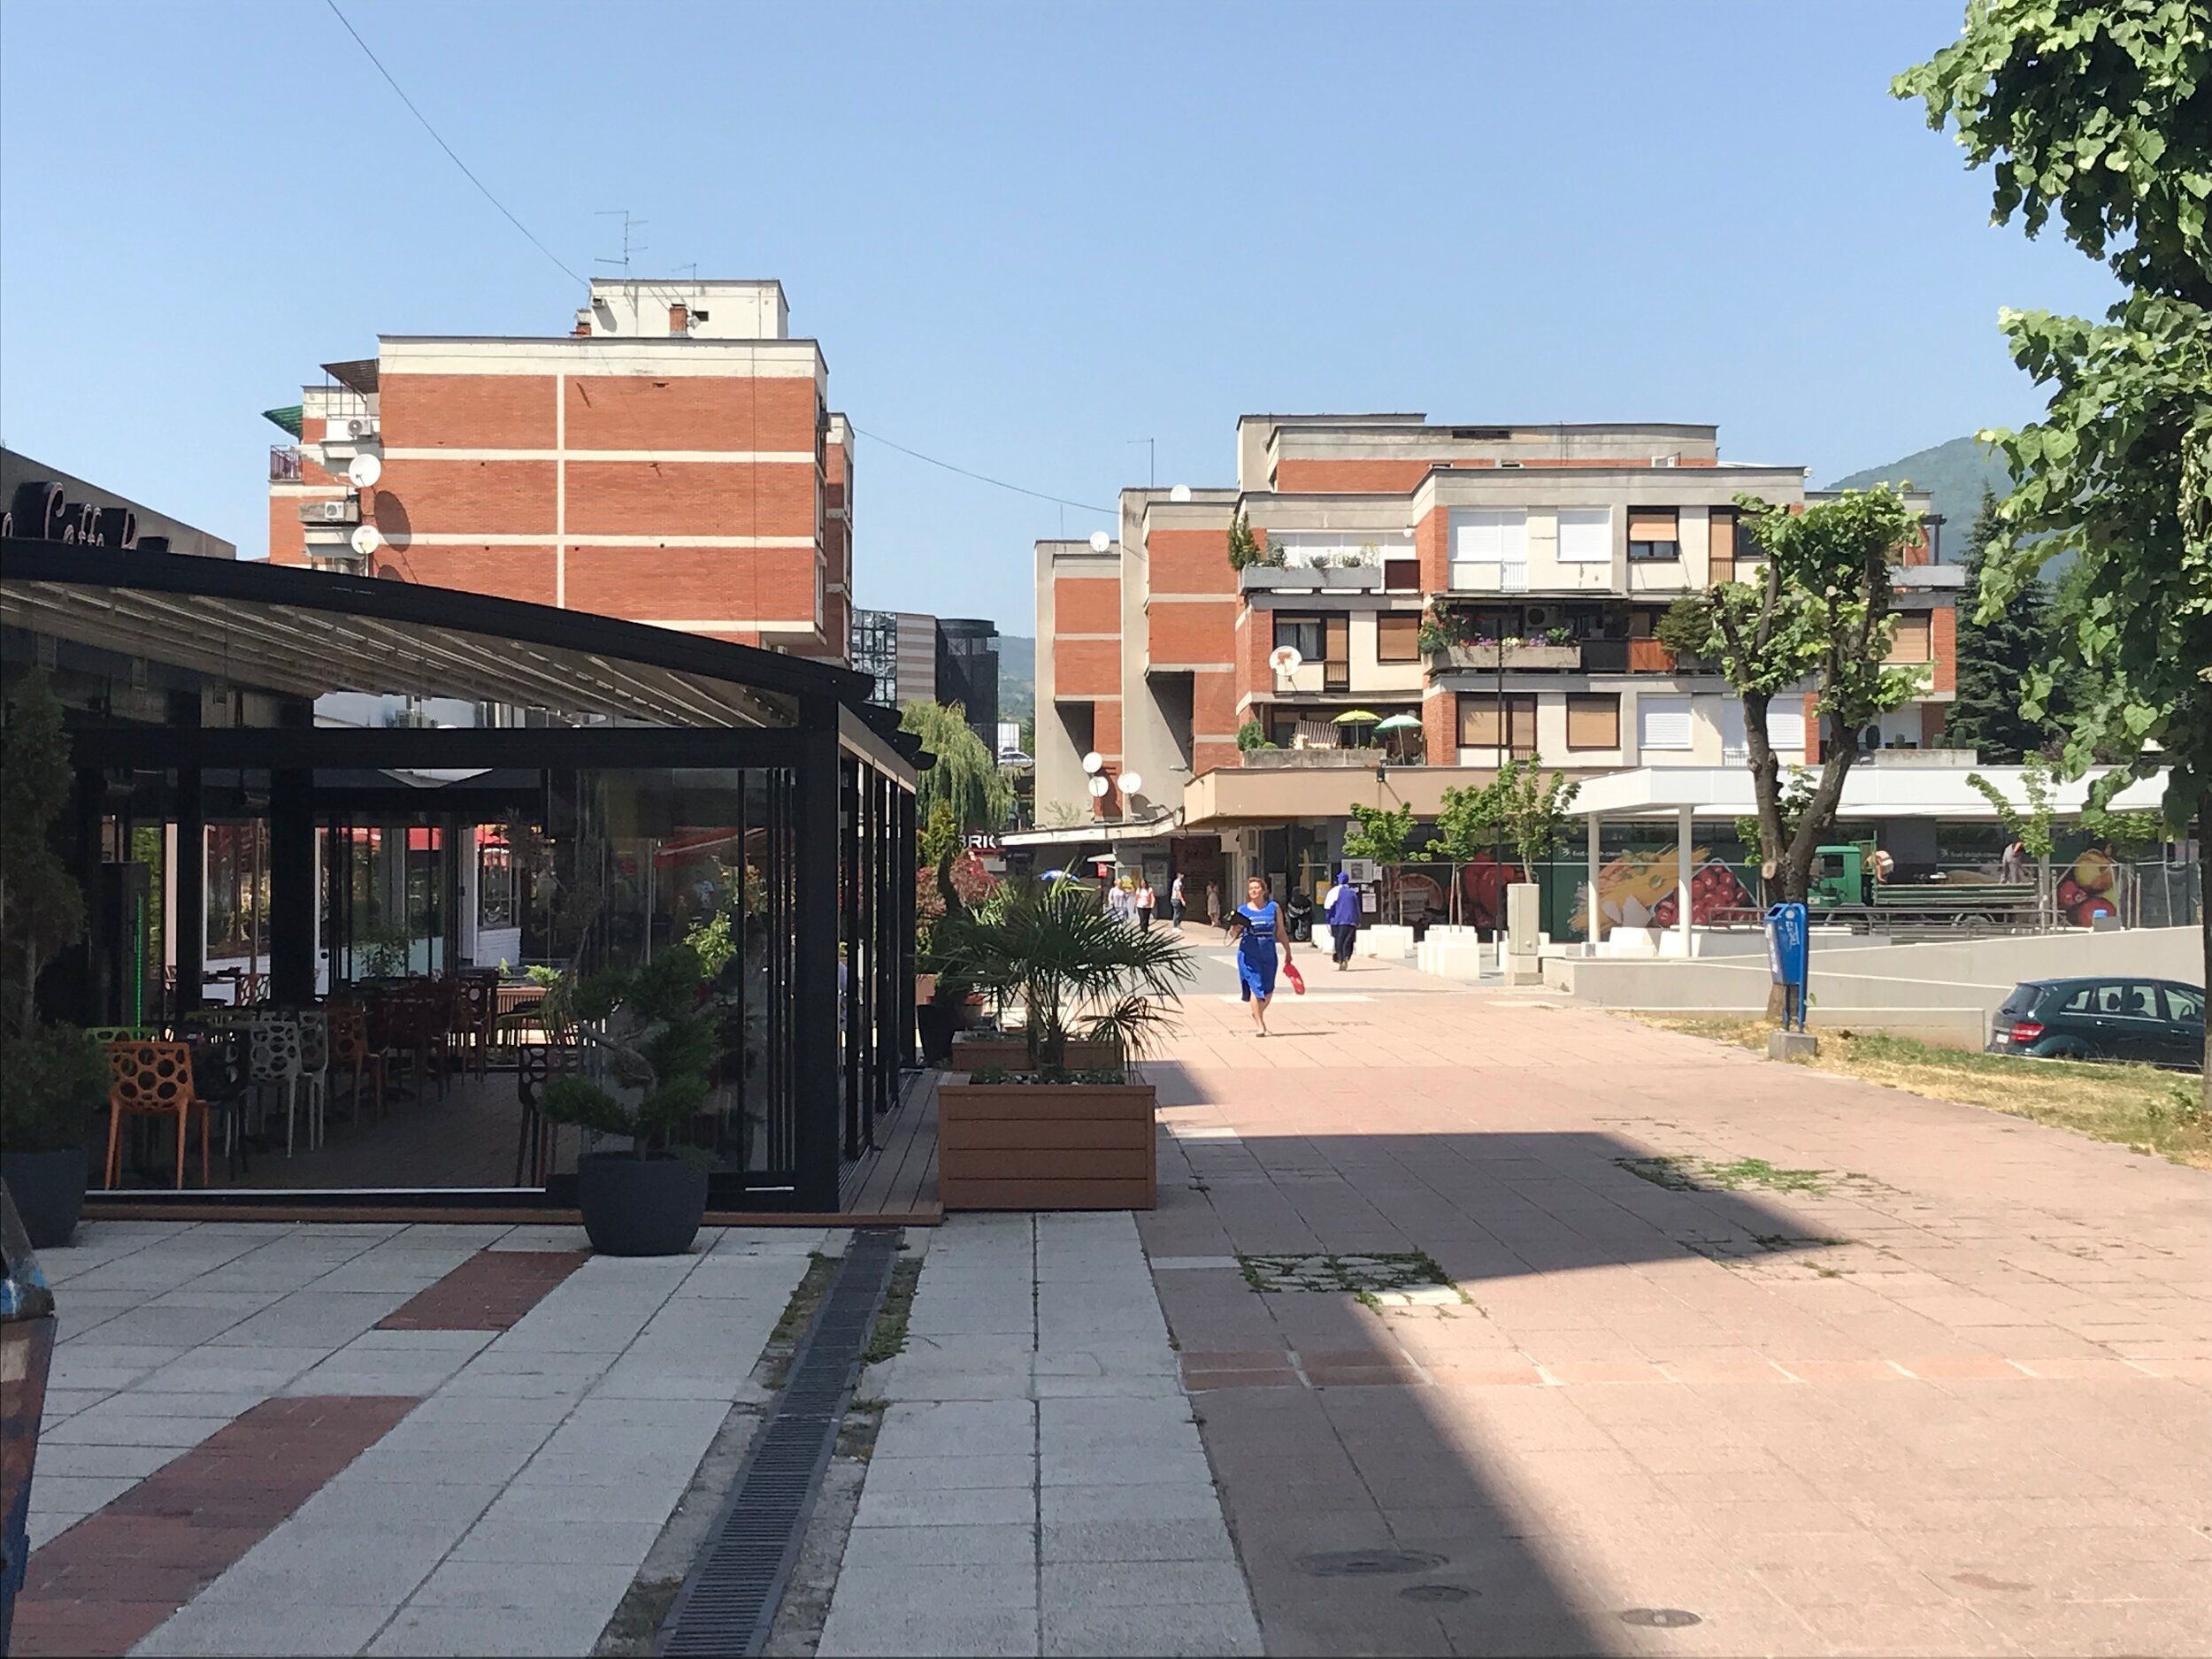 Figure 12. Cigale_03: Pješačka Zona in Cigale is as pedestrian street lined with cafes and shops, 2019. Photograph by Michael R. Allen.